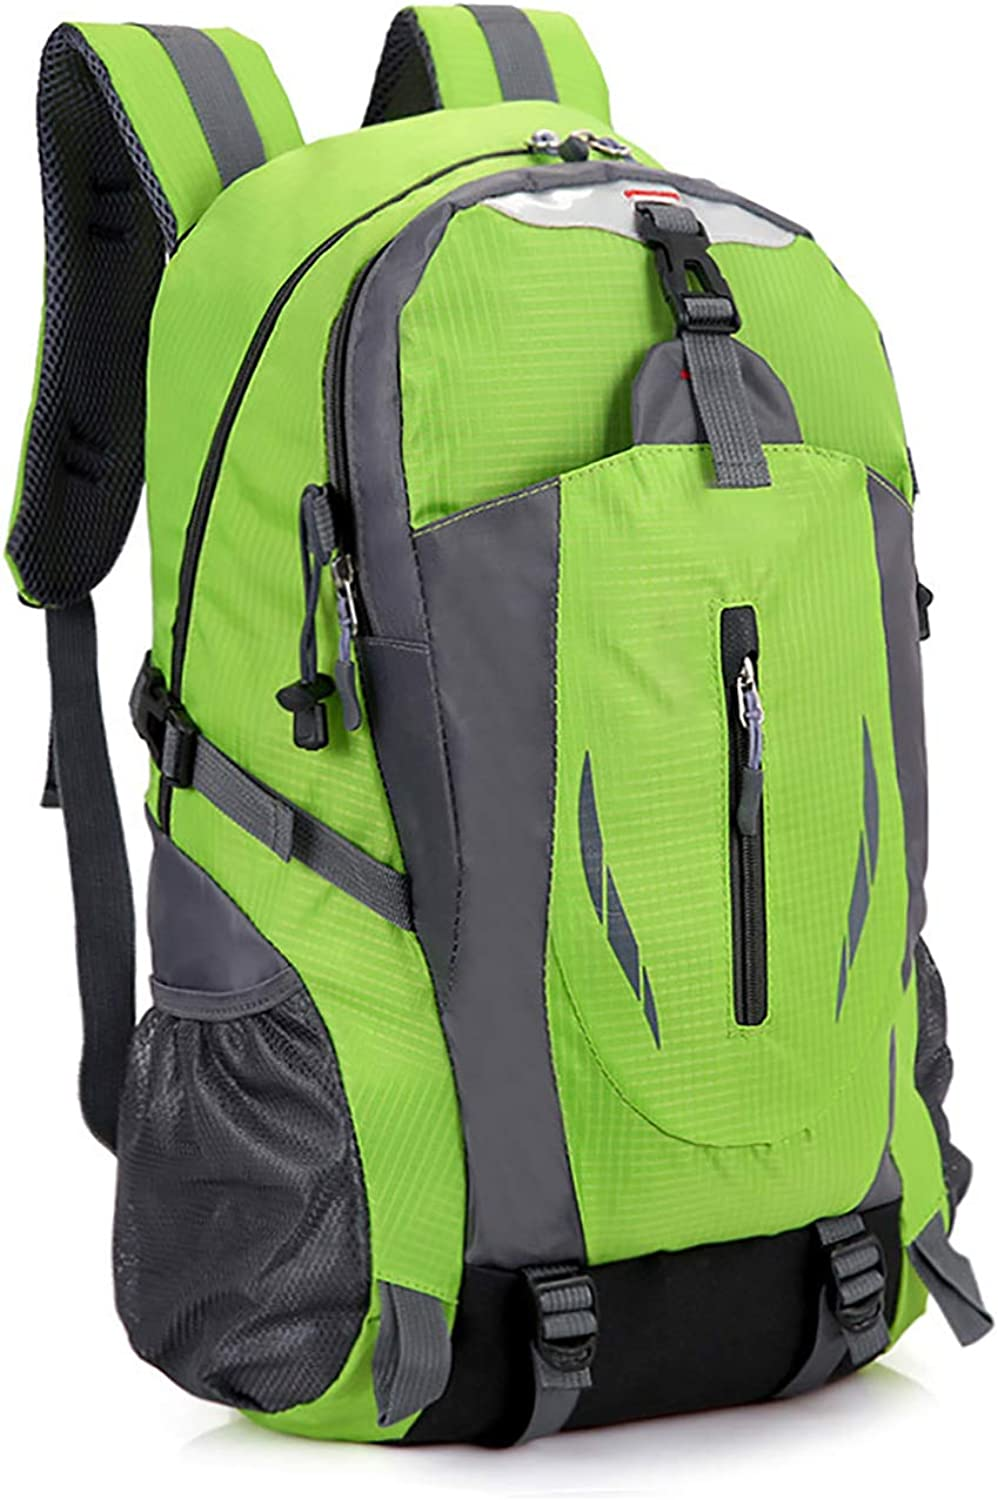 40L Lightweight Outdoor Hiking Backpack Casual Traveling \u0026 Camping Unisex